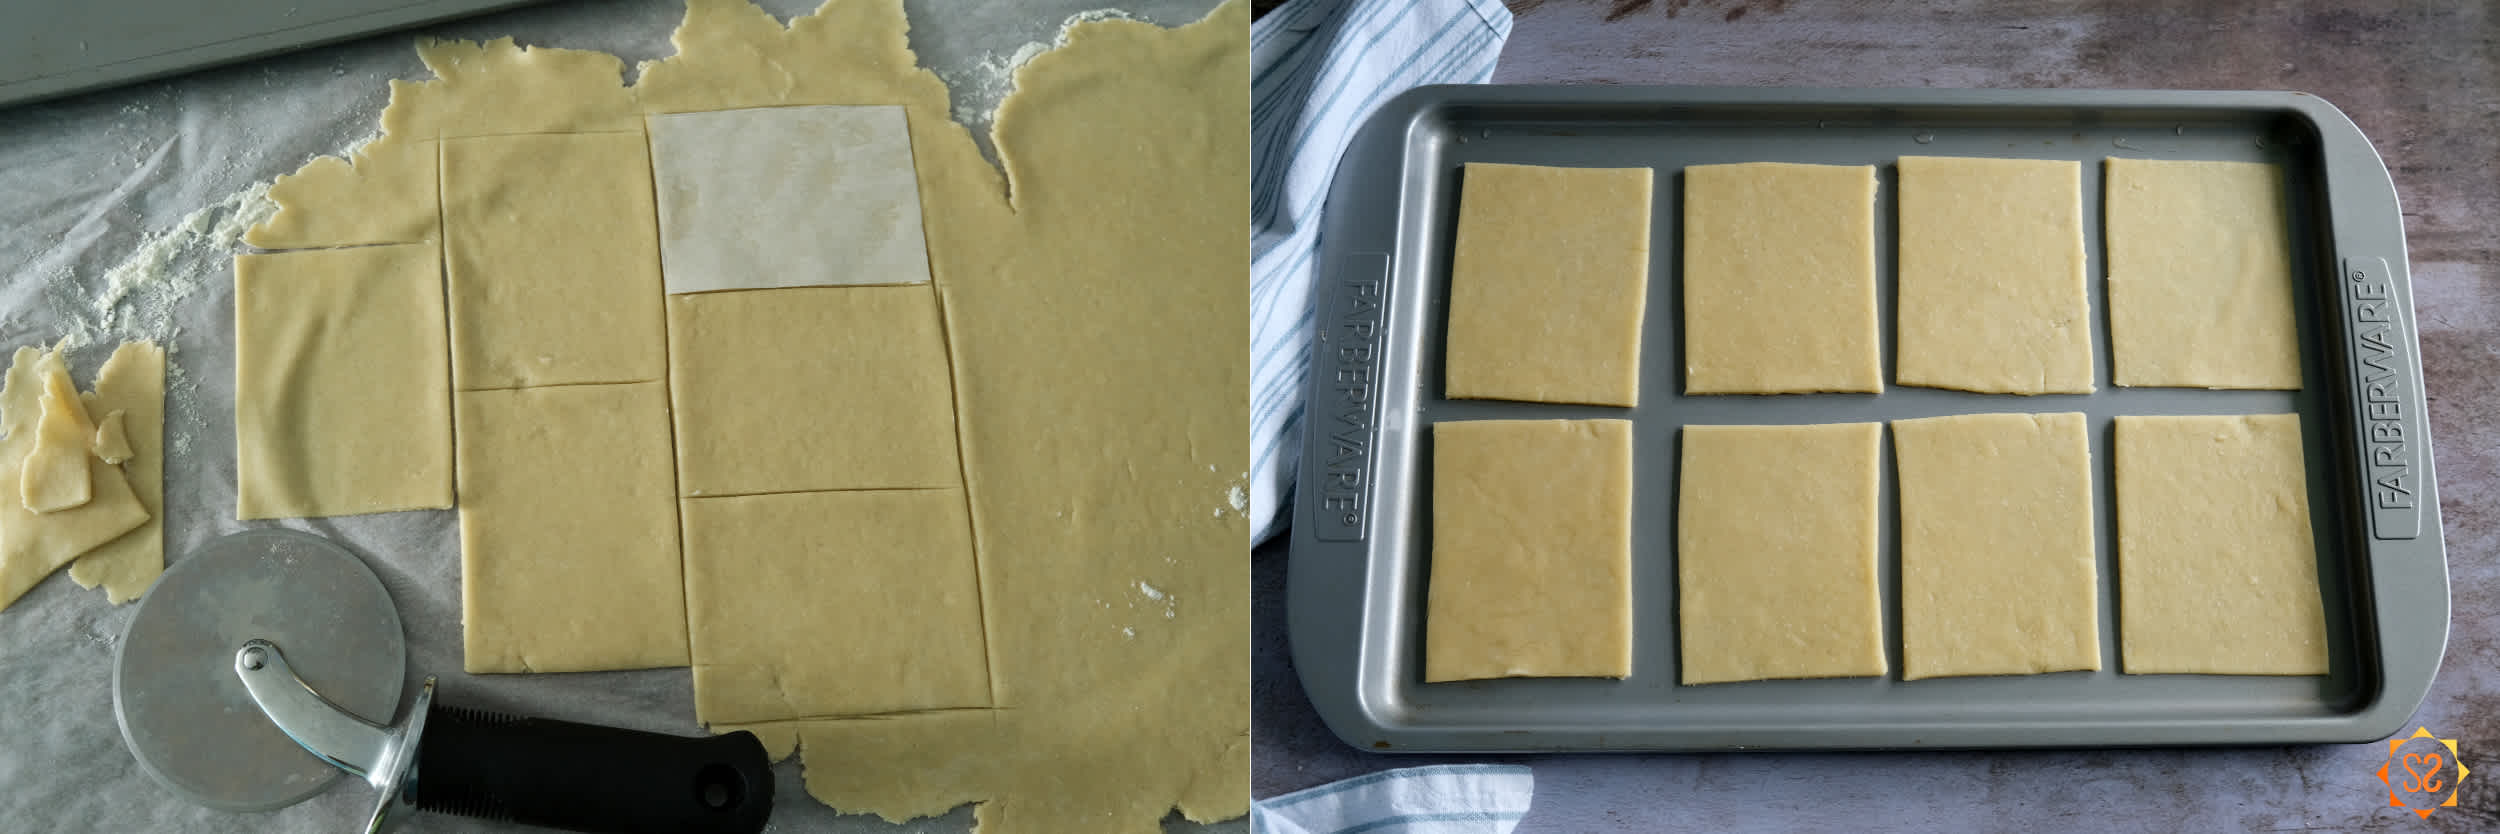 Left: rolled-out dough cut with a pizza cutter and parchment paper guide; right: dough rectangles on a baking tray